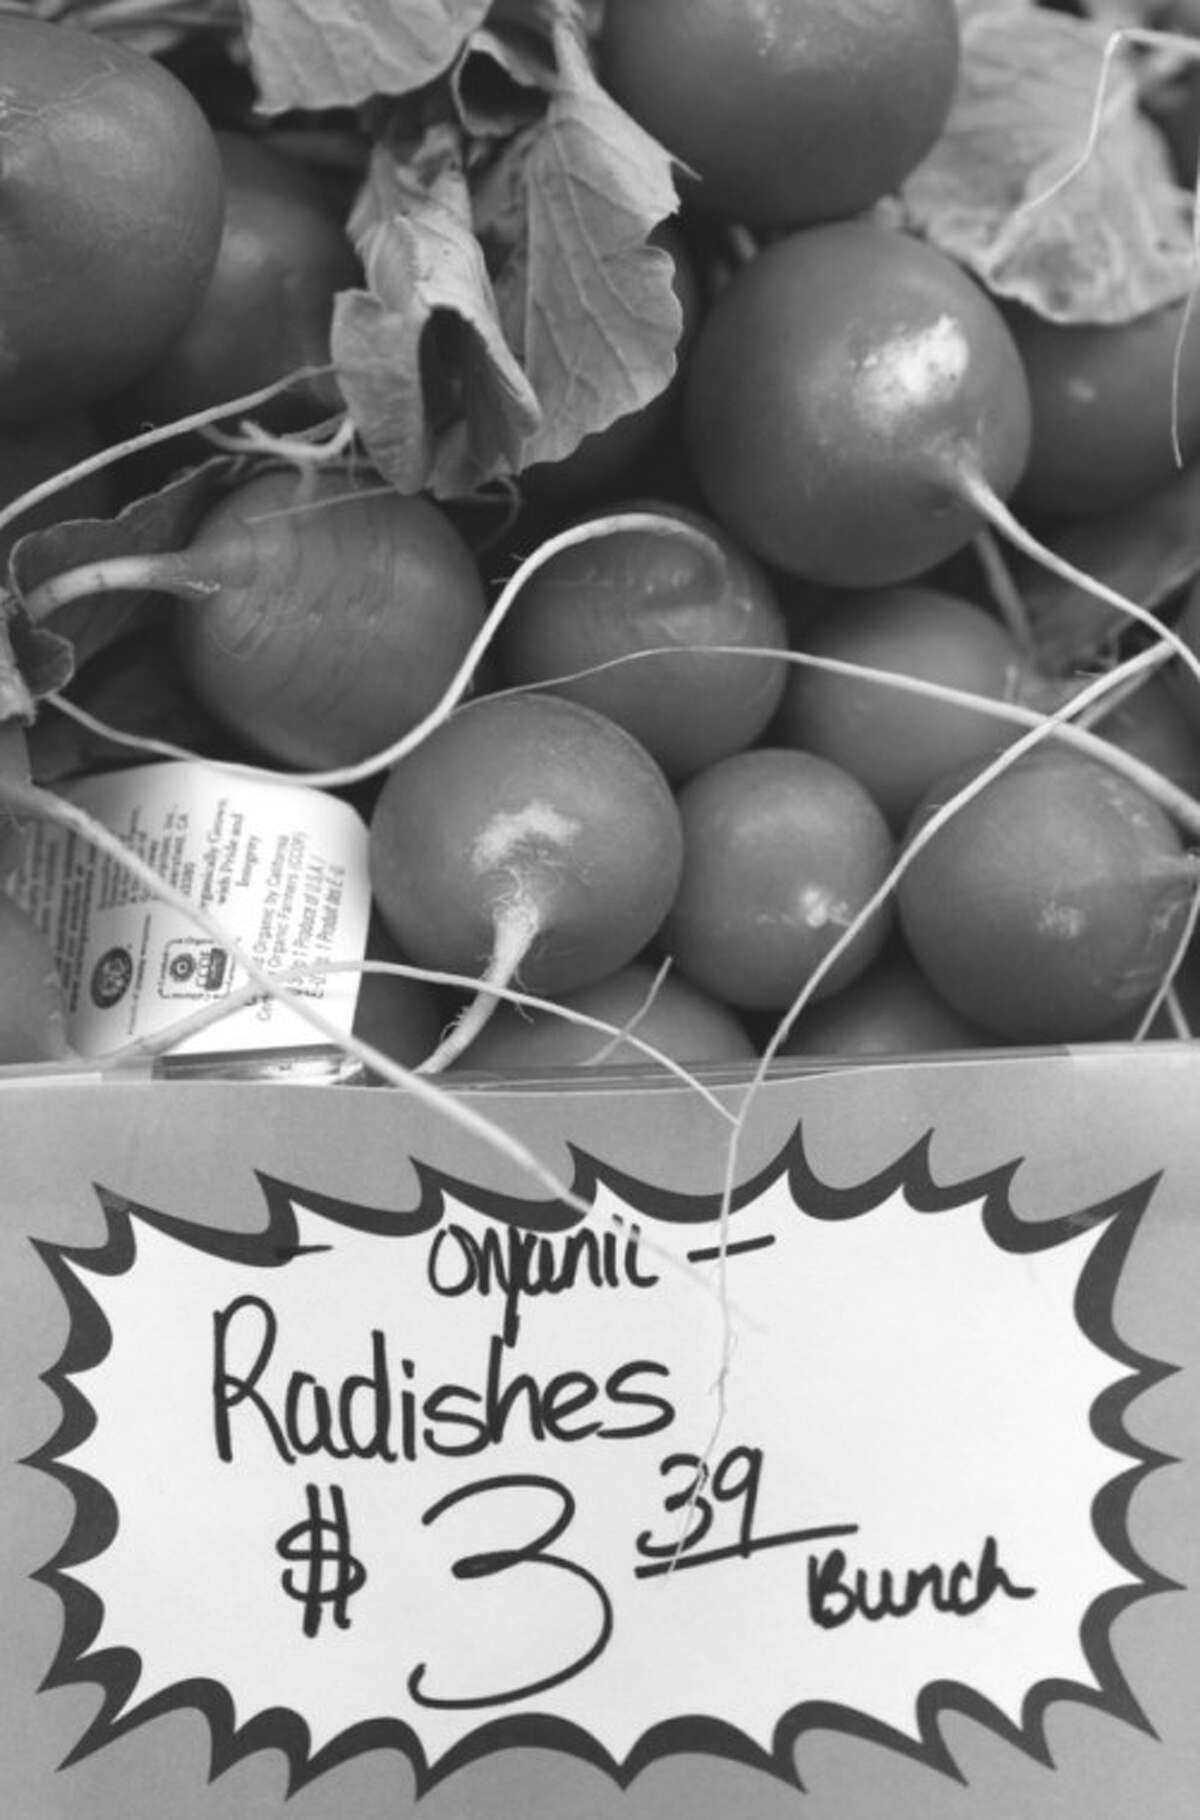 AP file photo This March 2011 file photo shows organic radishes at the Pacifica Farmers Market in Pacifica, Calif.